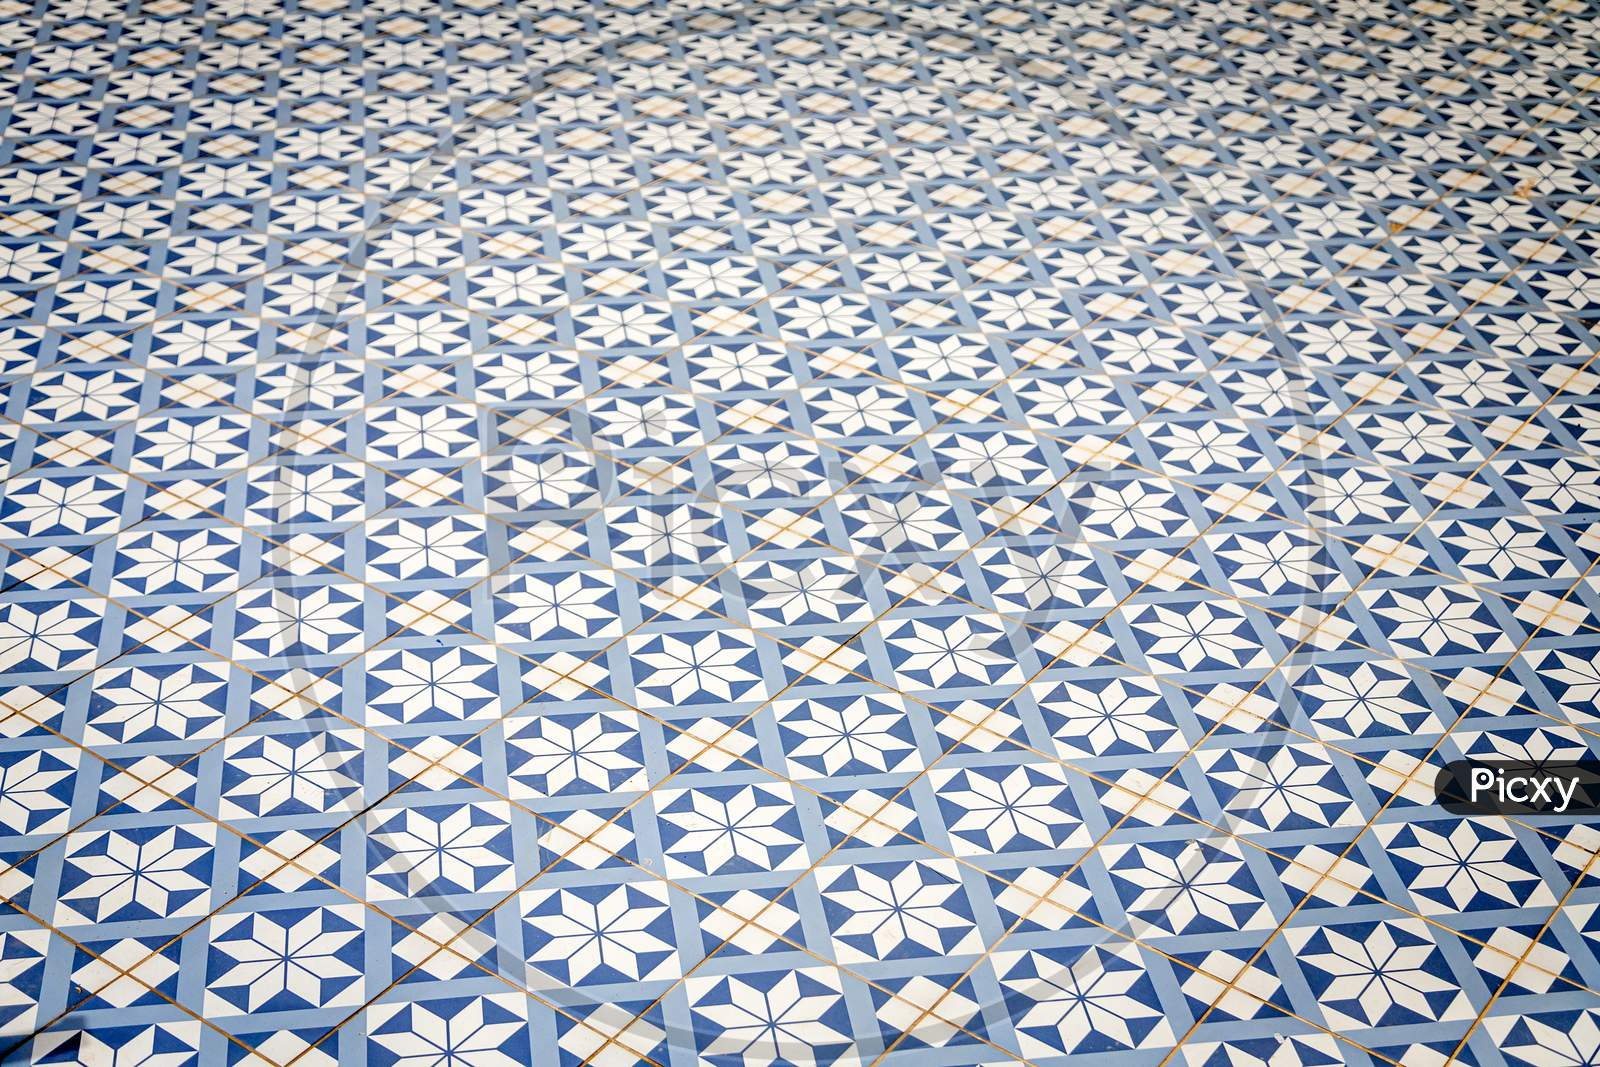 GEOMETRIC CERAMIC TILE WITH MOROCCAN PATTERN